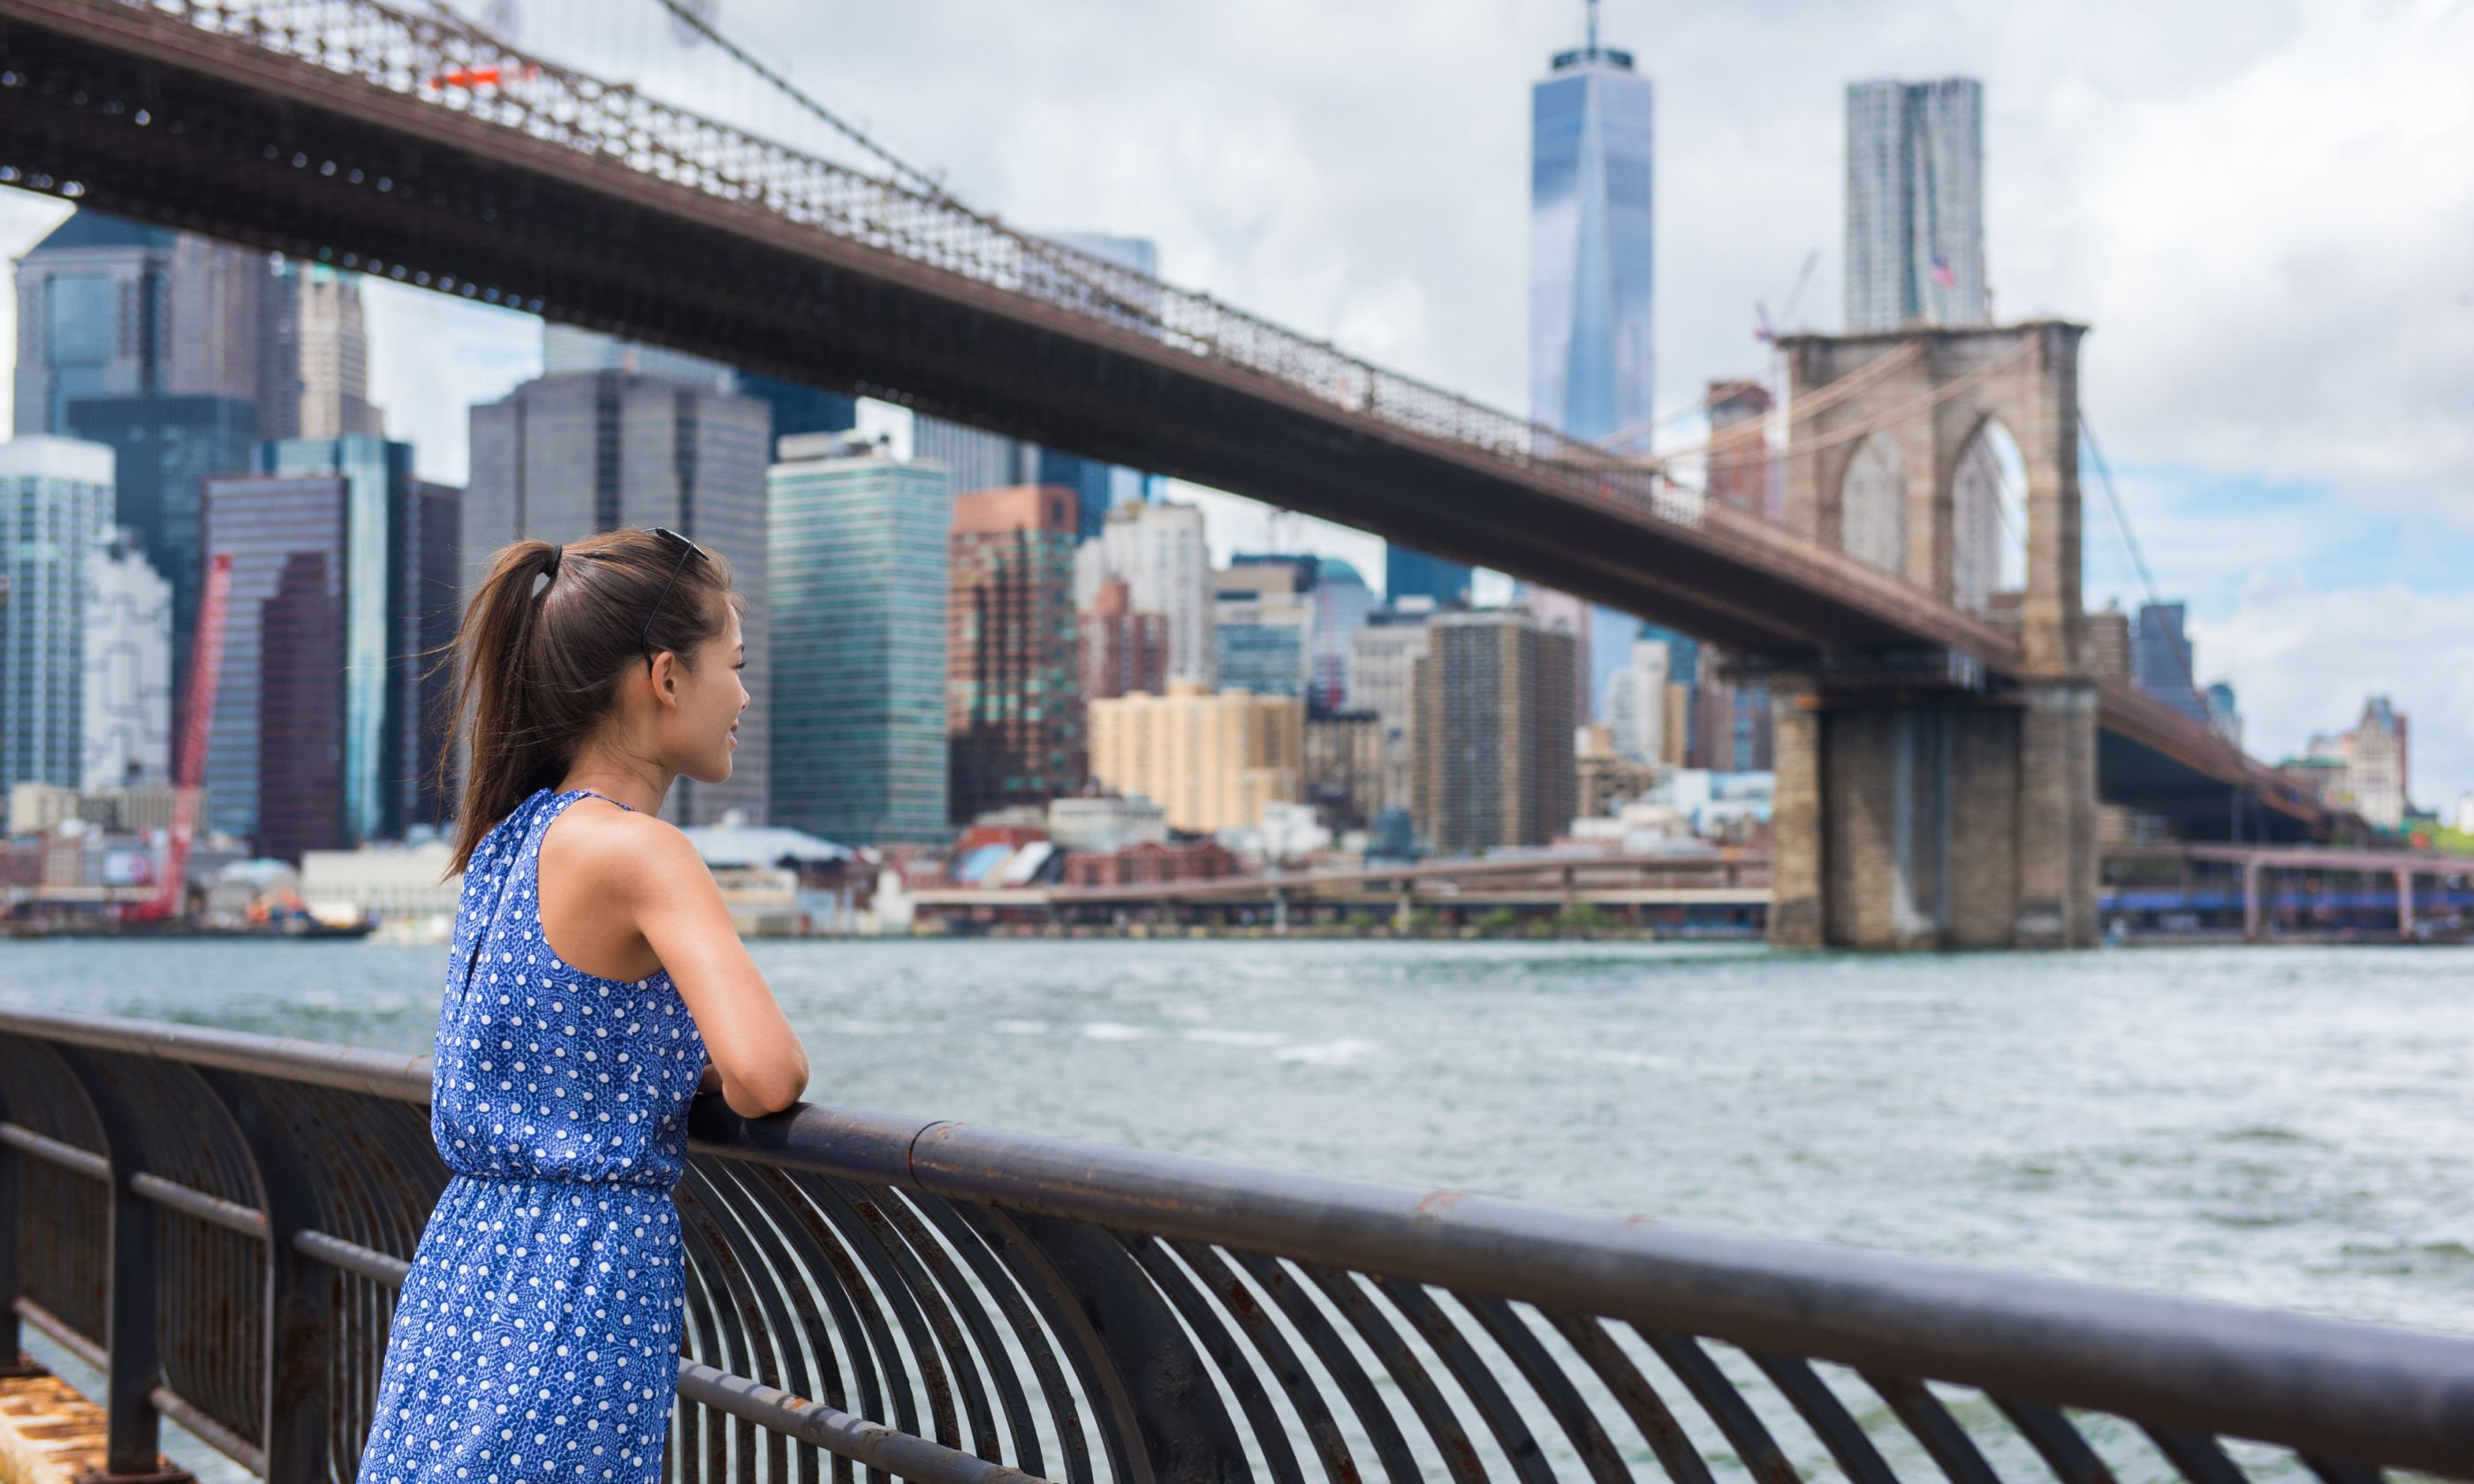 The Best City For Solo Travel (According To Anthony Bourdain)